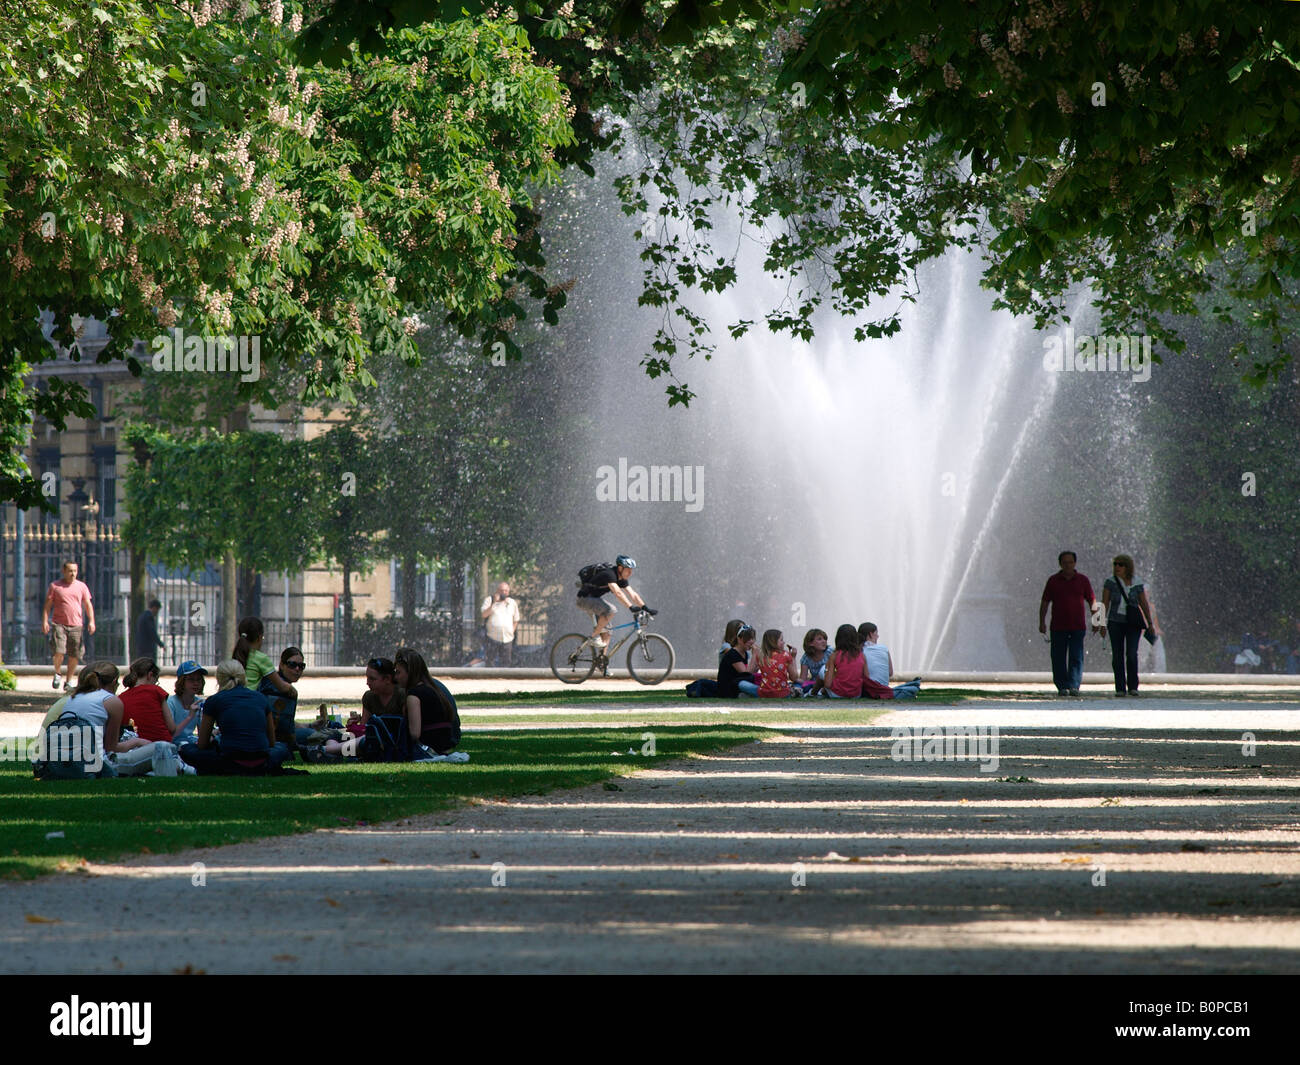 The Warande park in front of the royal palace in Brussels Belgium on a hot summer day Stock Photo